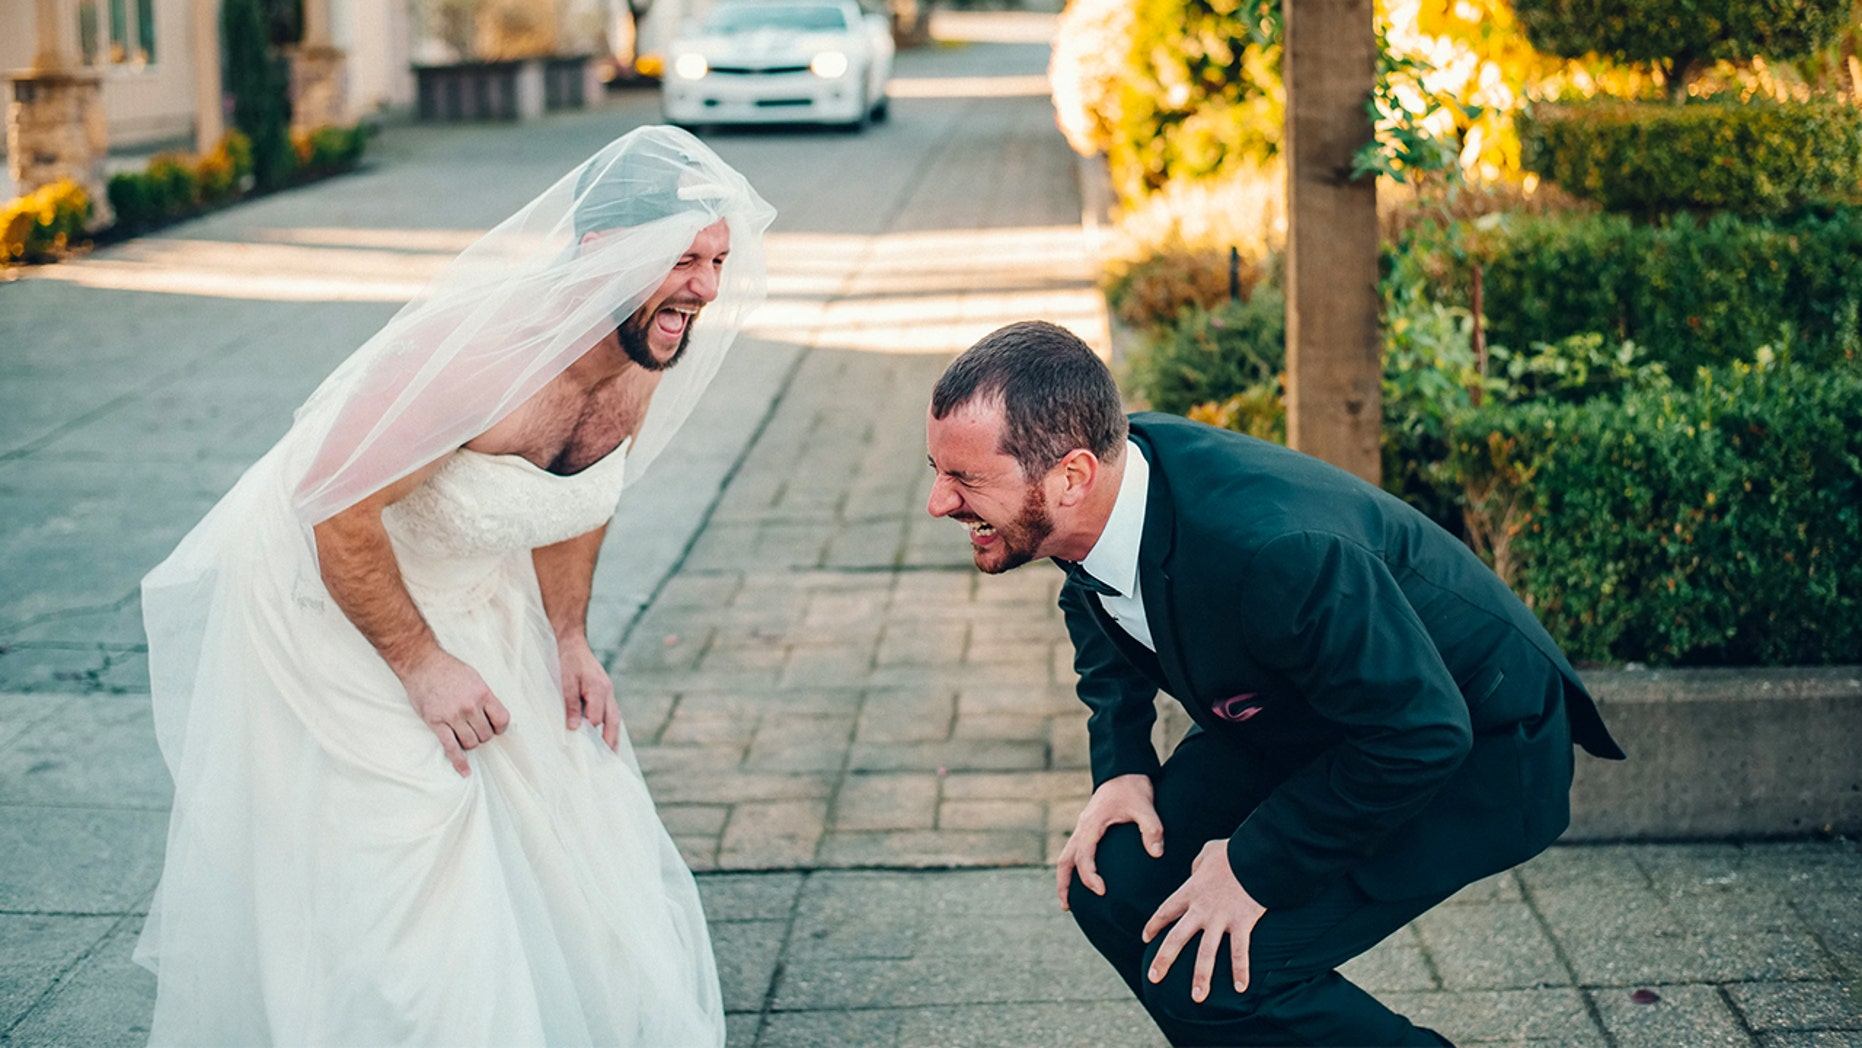 """A best man surprised the groom by trading places with the bride for the """"first look"""" photo."""